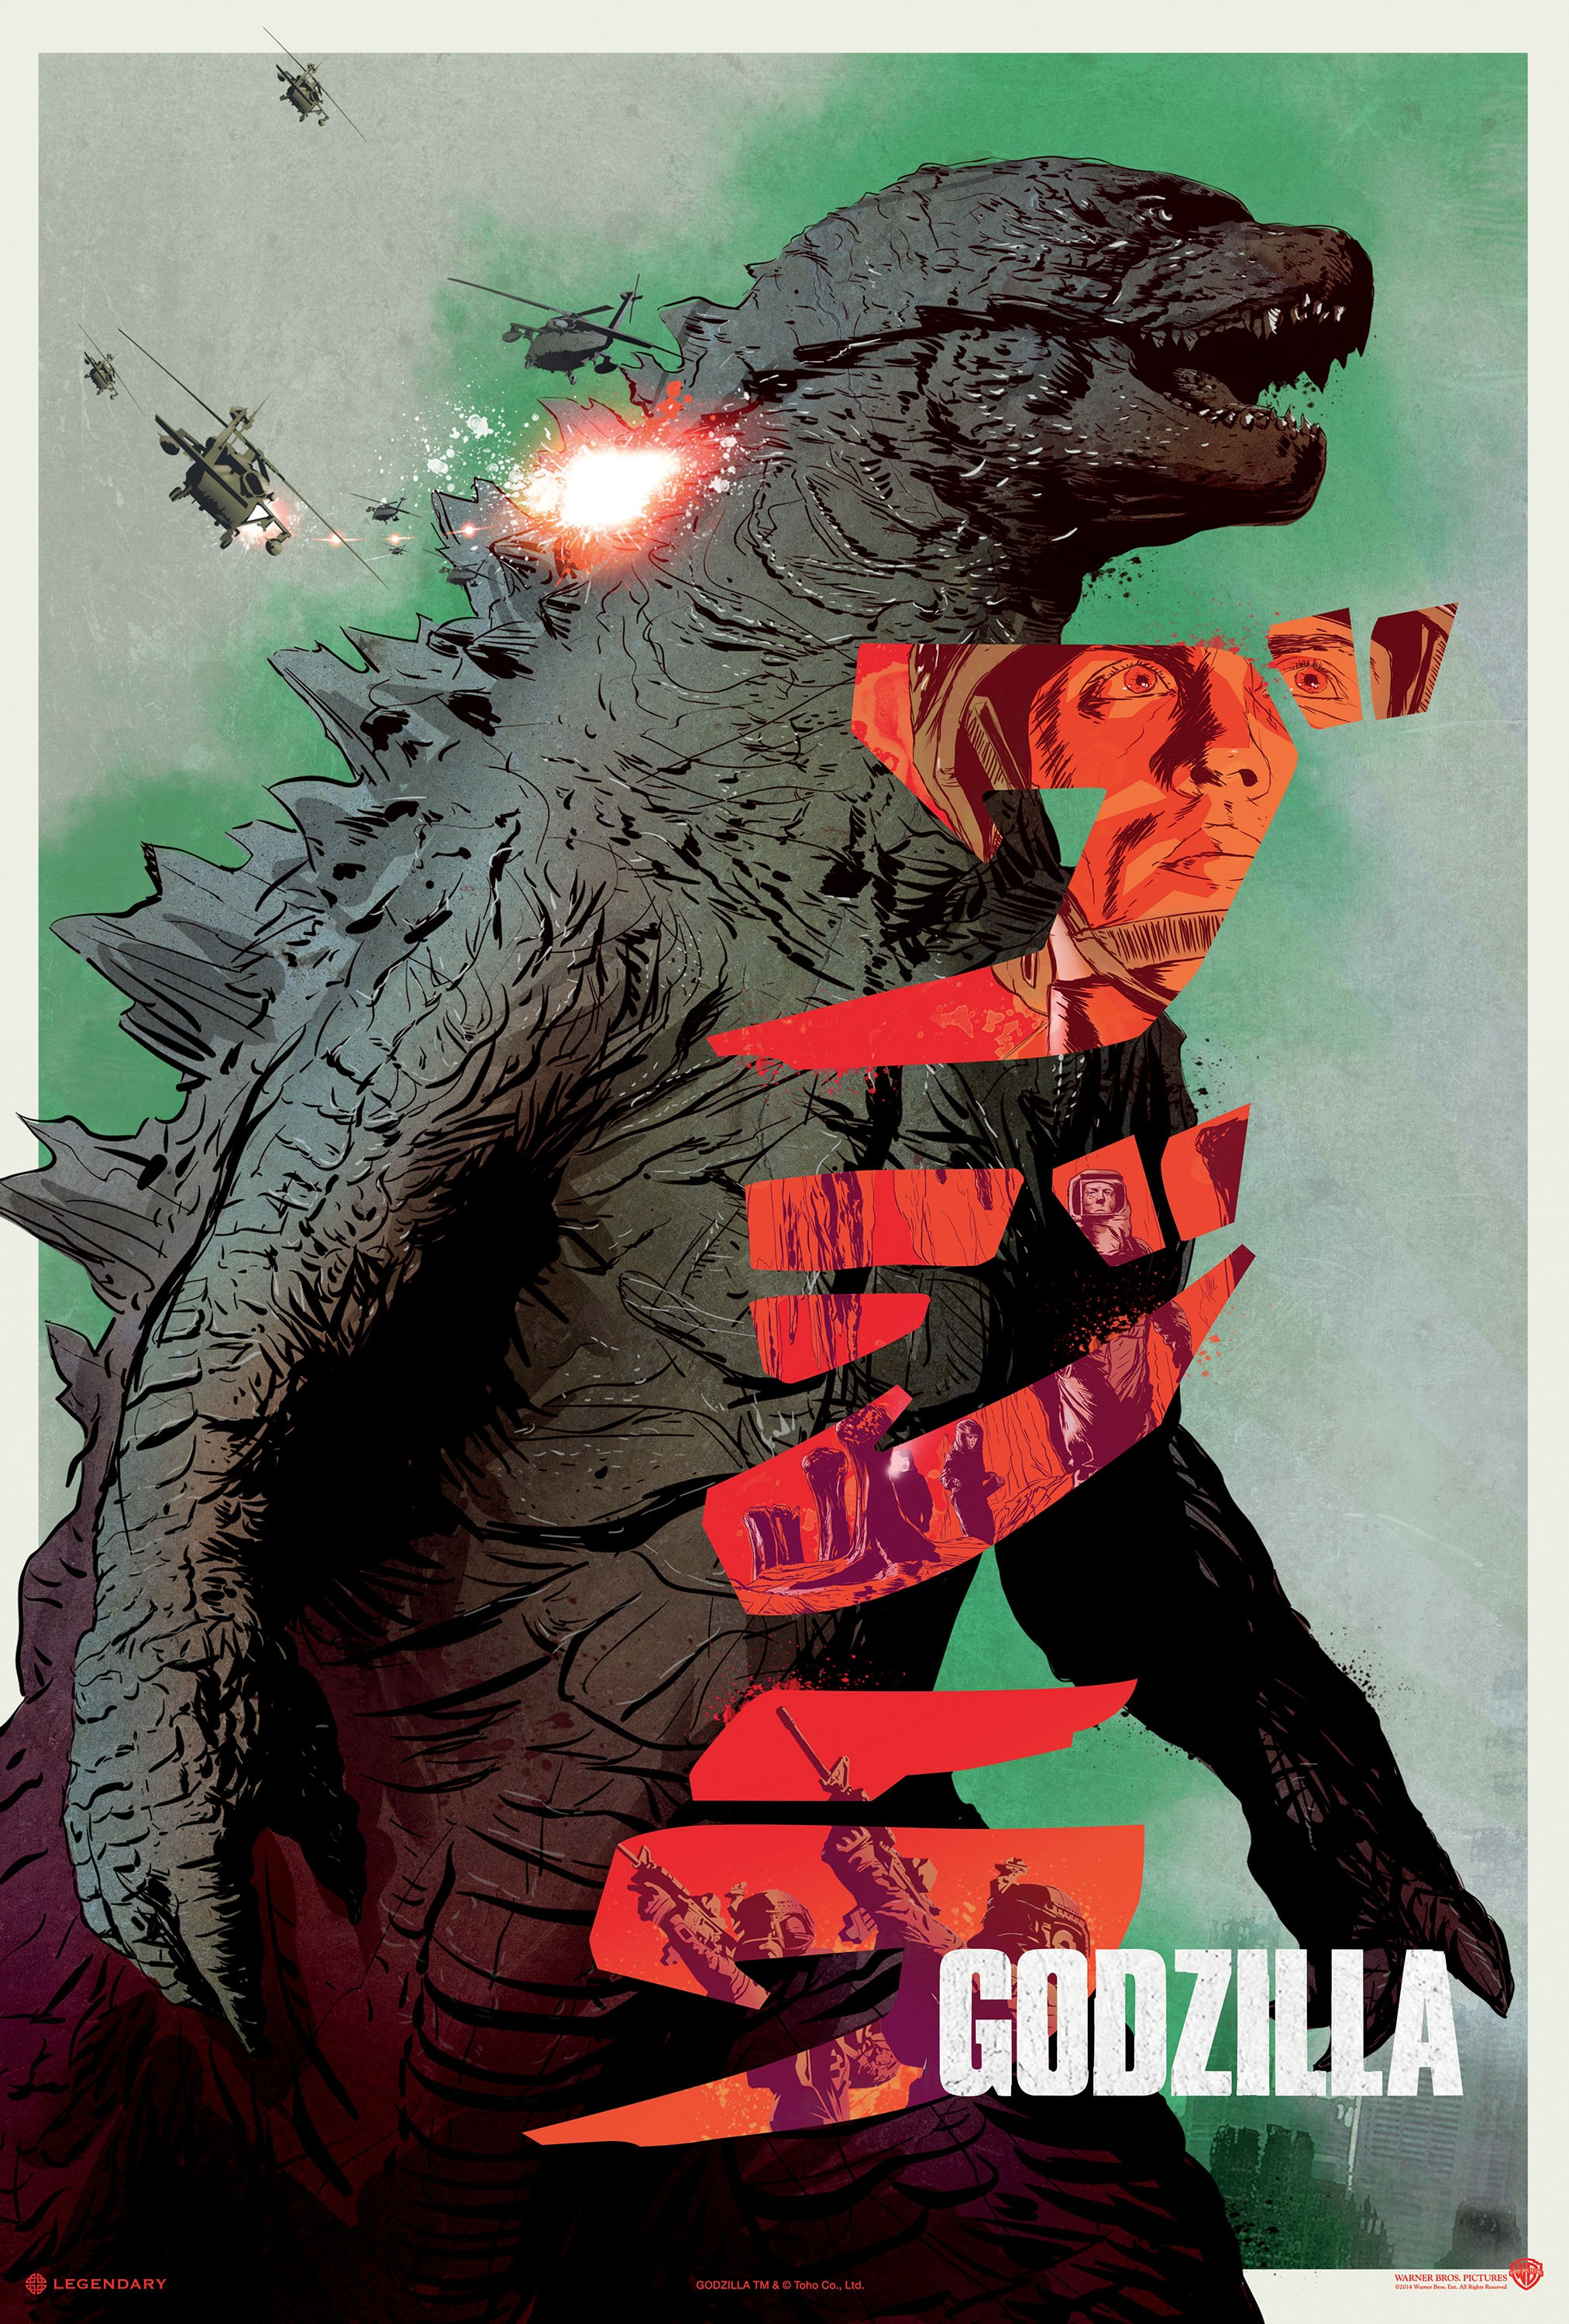 Godzilla-Official Poster Banner PROMO XLG-07MAIO2014-02